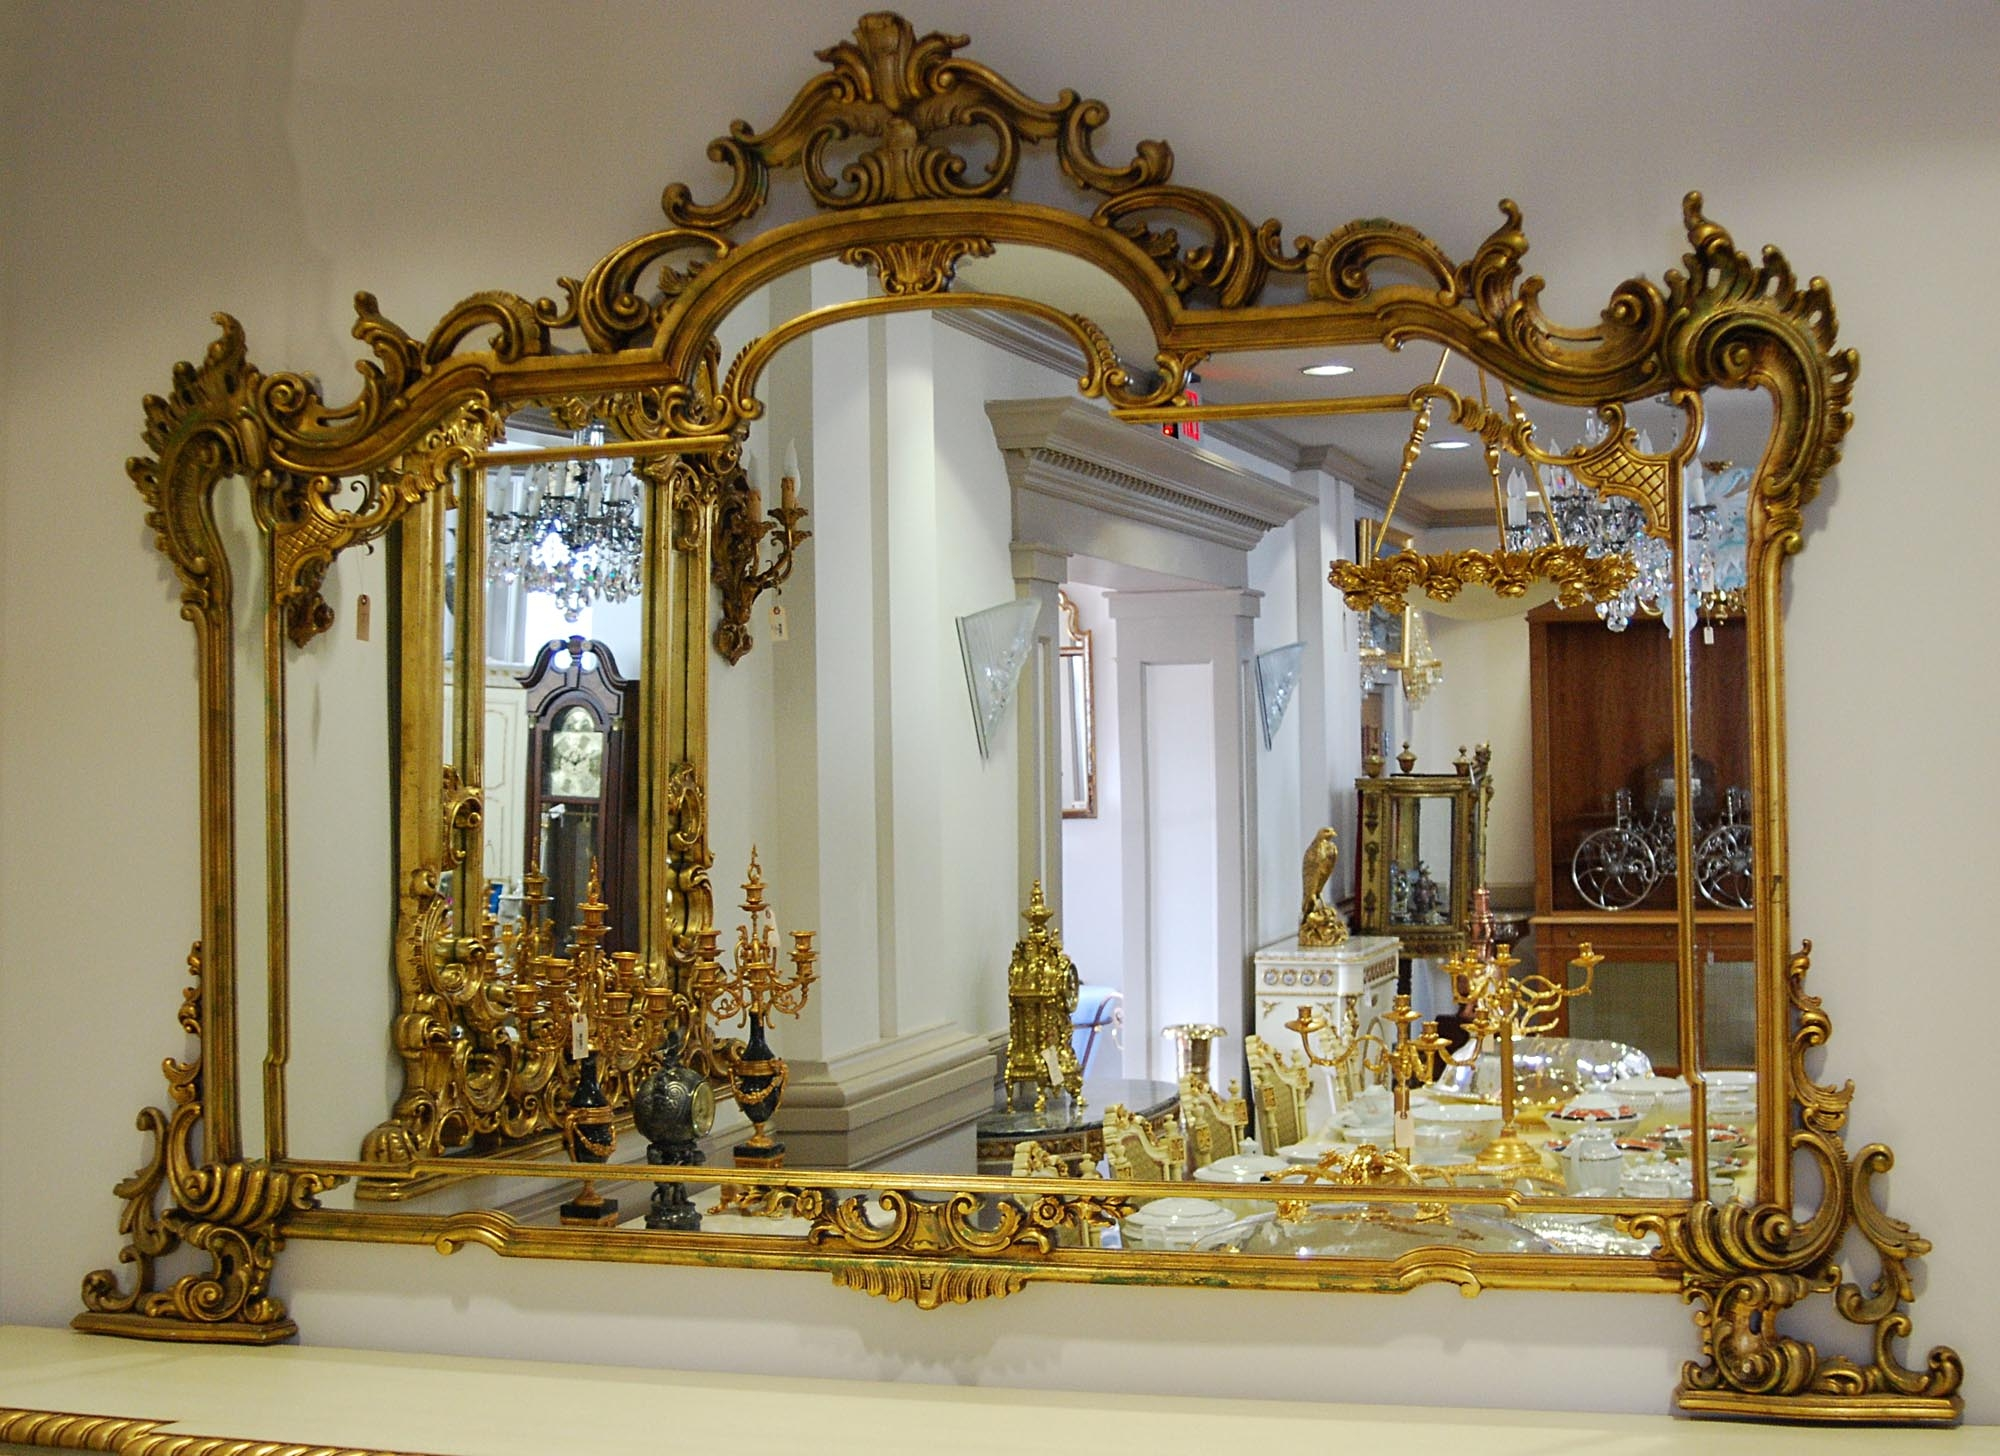 Italian Rococo Mirror Stuff To Buy Pinterest Architecture Throughout Rococo Mirror Cheap (View 4 of 15)